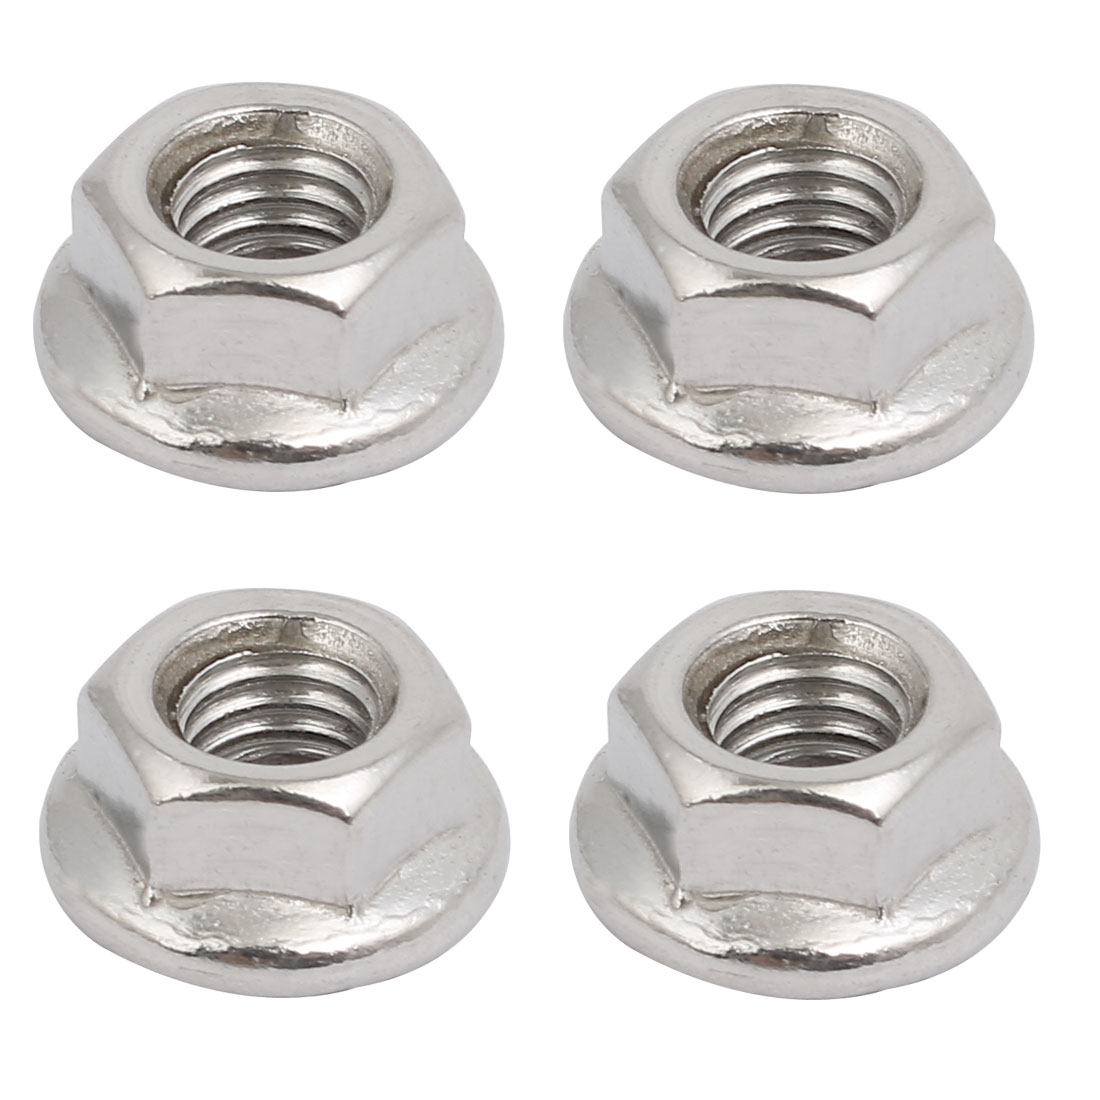 4pcs M6x1mm Pitch Metric Thread 304 Stainless Steel Left Hand Hex Flange Nut